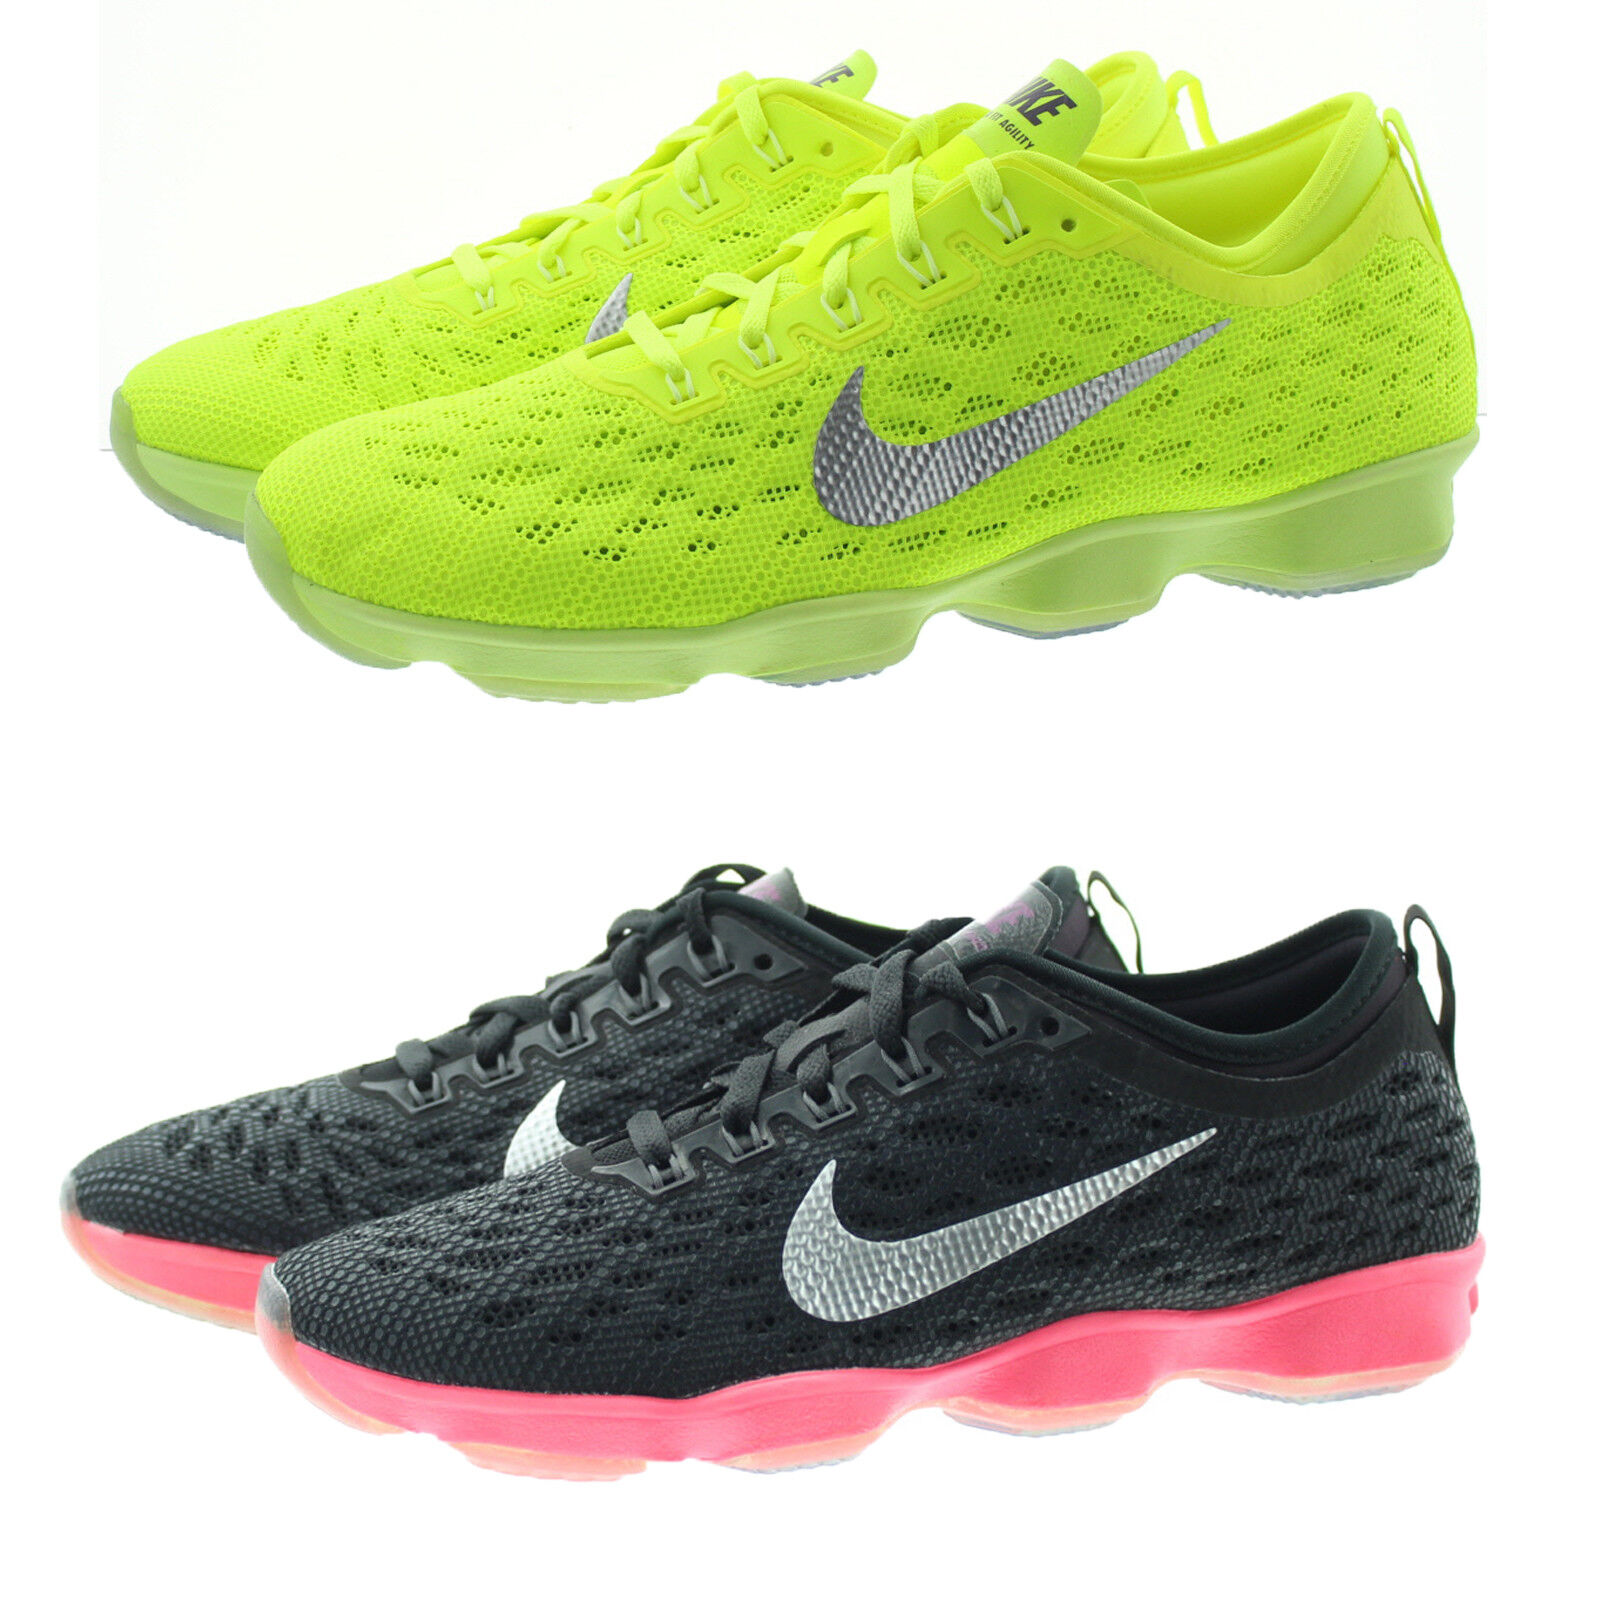 1c369d6bdded4 Nike 684984 Womens Zoom Fit Agility Training Cross Fit Fit Fit Running shoes  Sneakers a30423